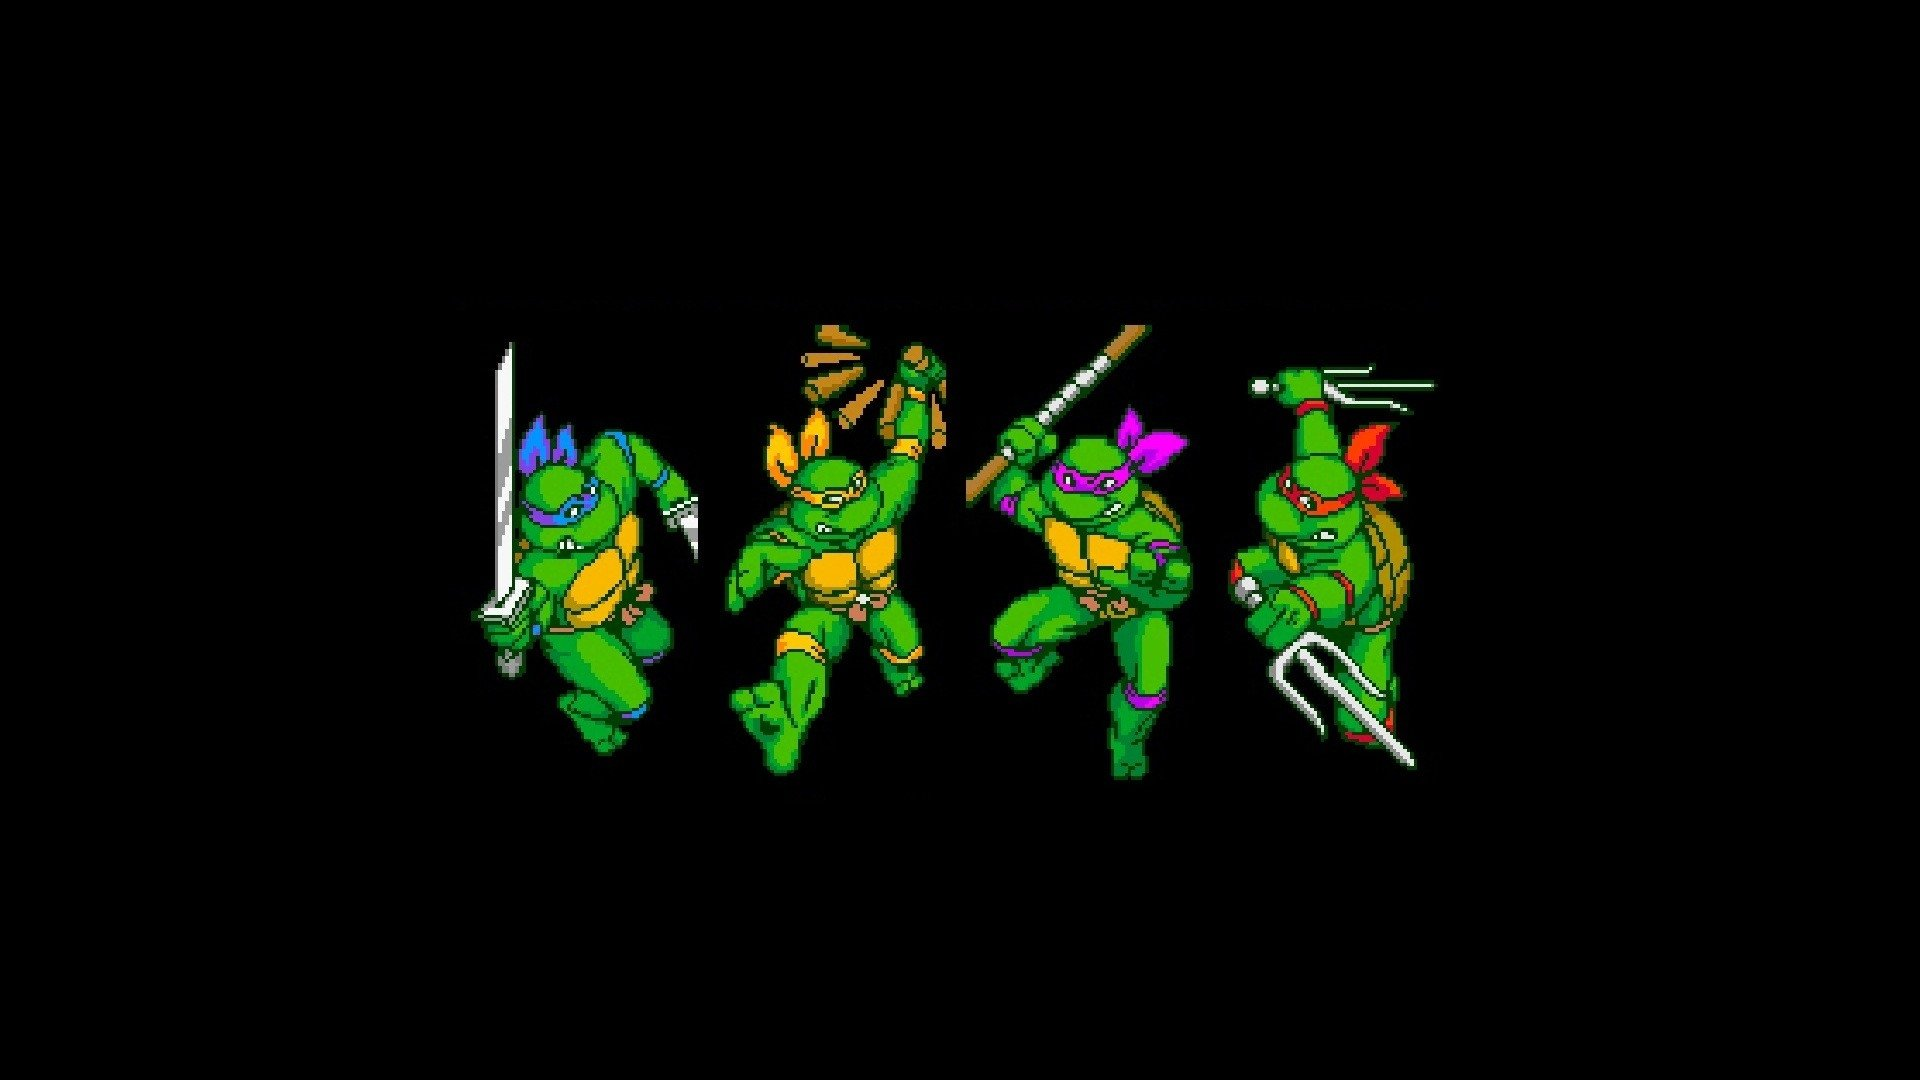 Teenage Mutant Ninja Turtles Iv Turtles In Time Fondo De